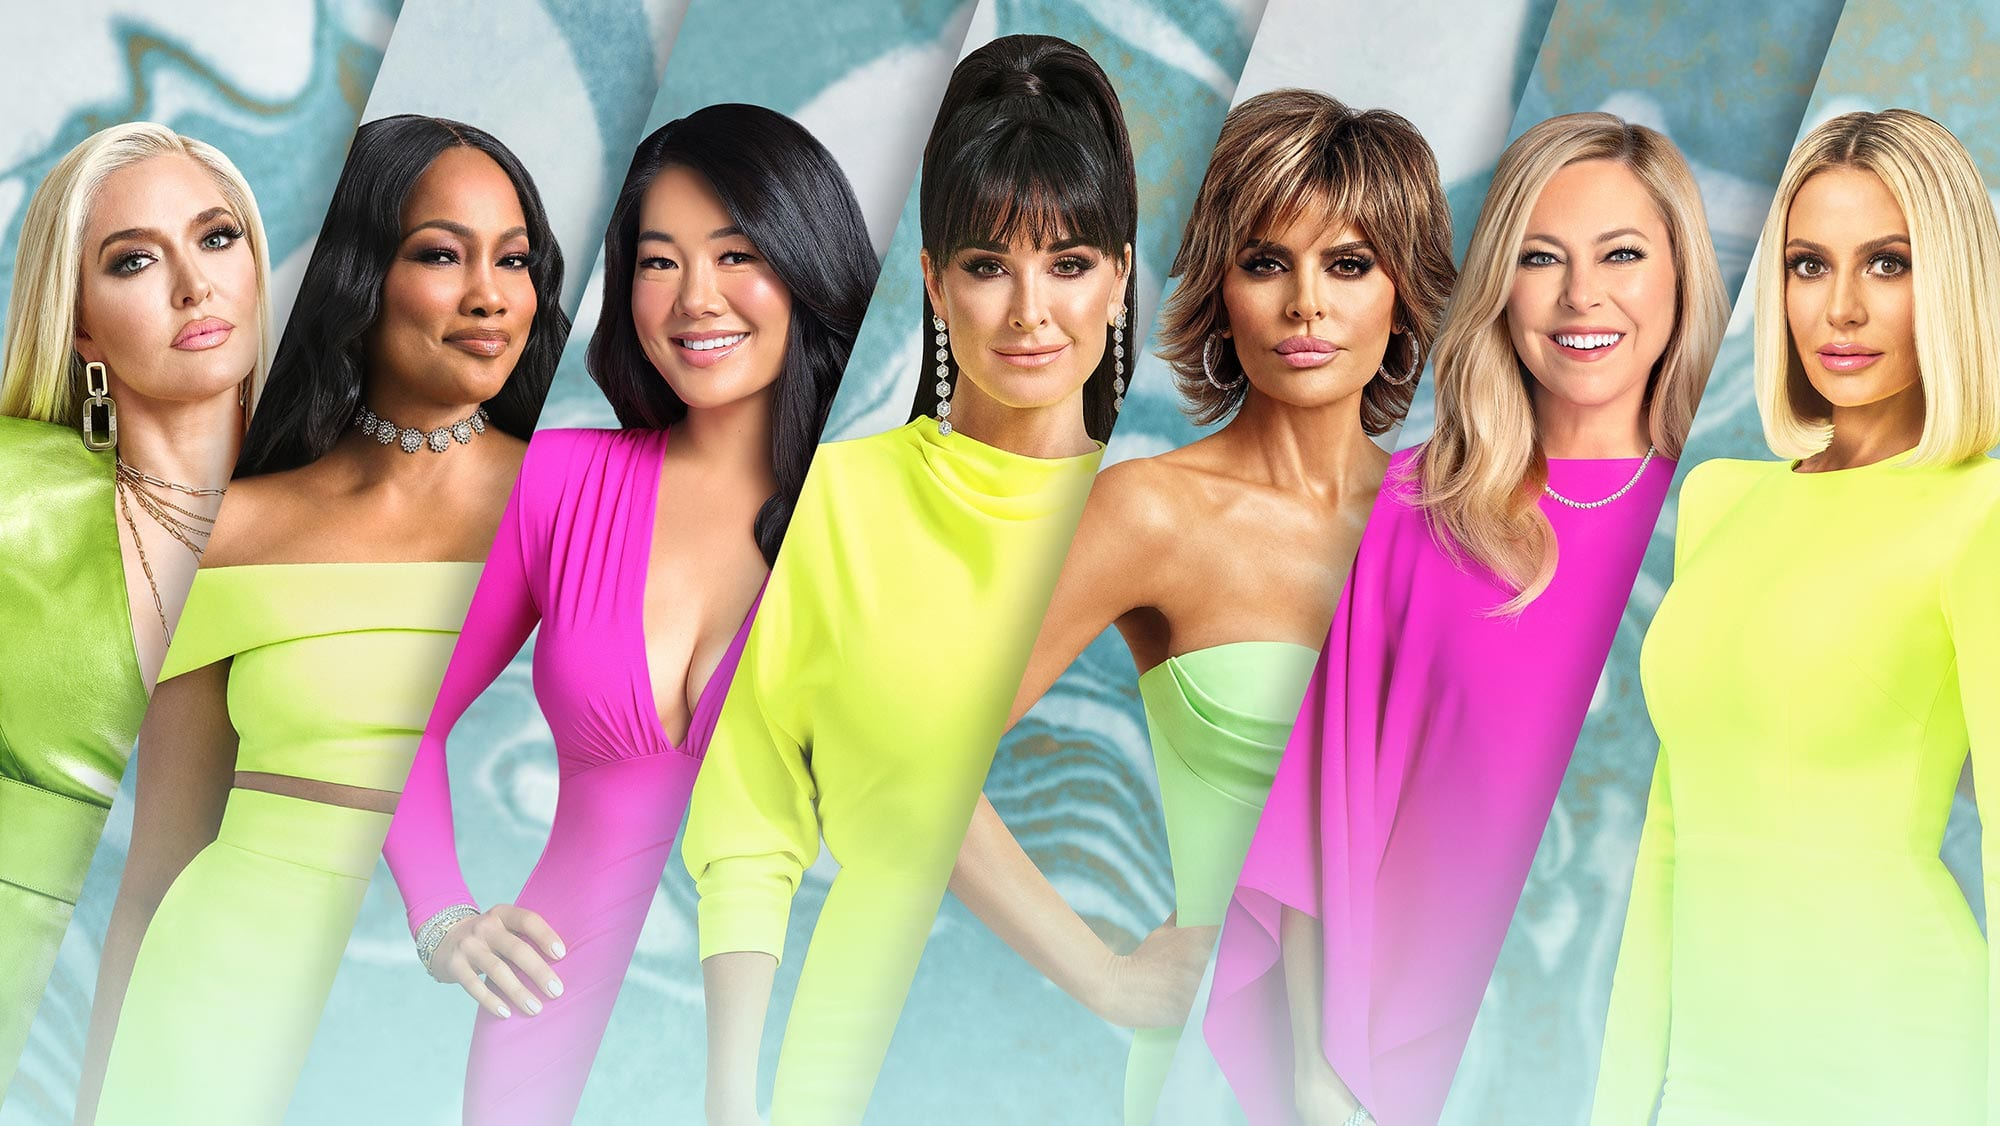 Preview: The Real Housewives of Beverly Hills Season 11 Episode 3